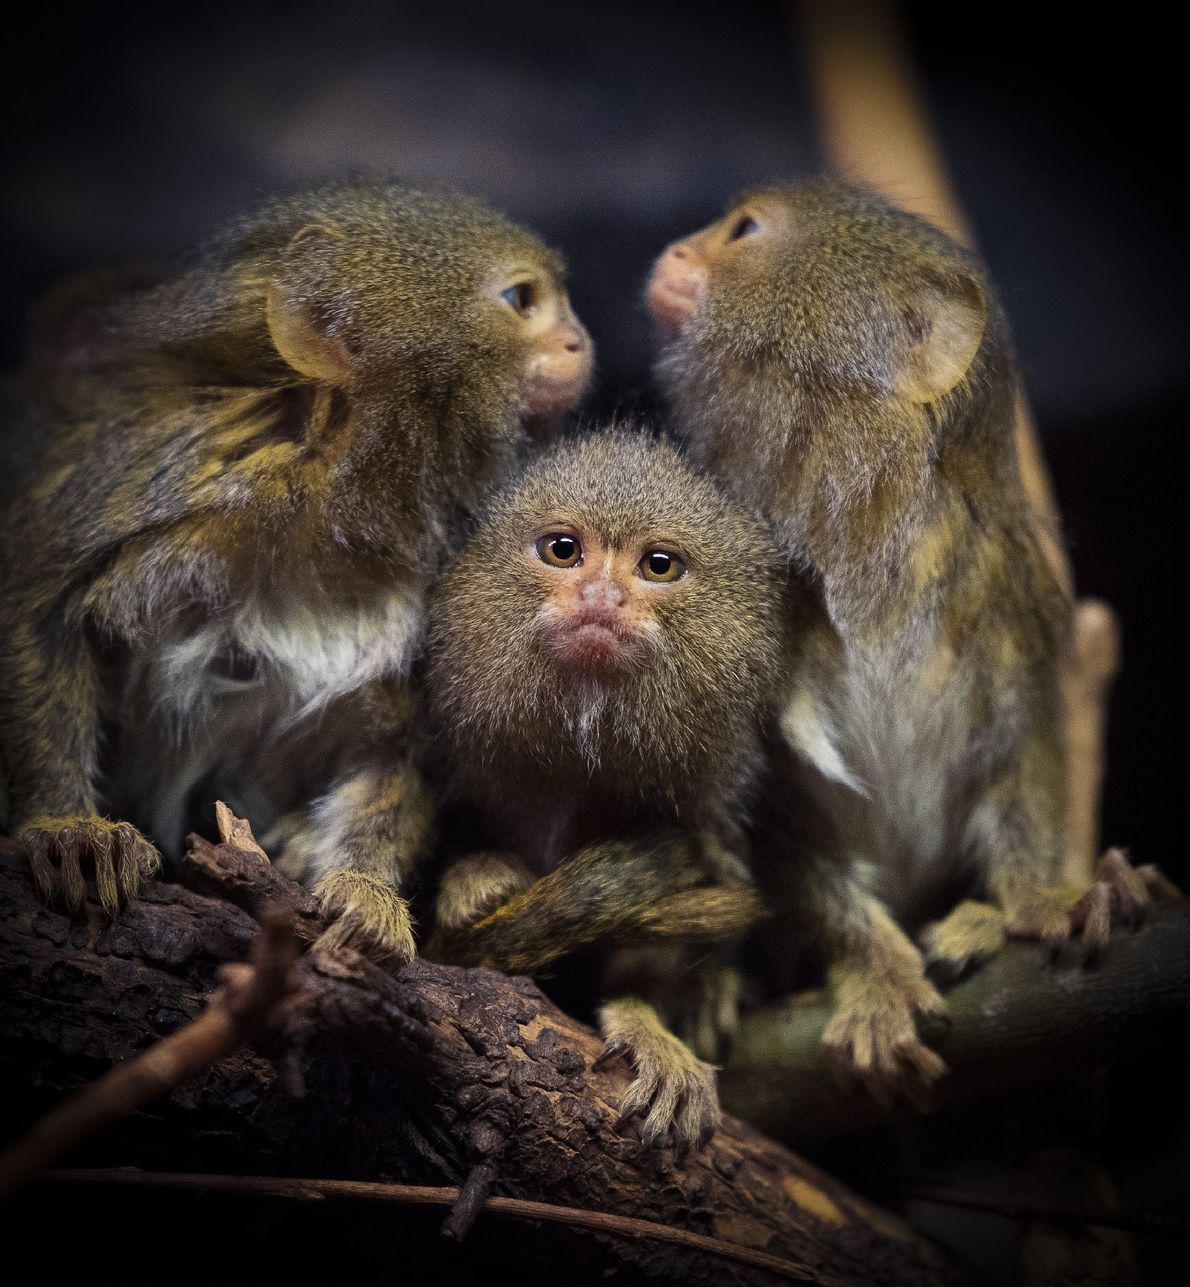 Your Shot photographer Peter Hoszang documented these marmosets in Riga, Latvia.